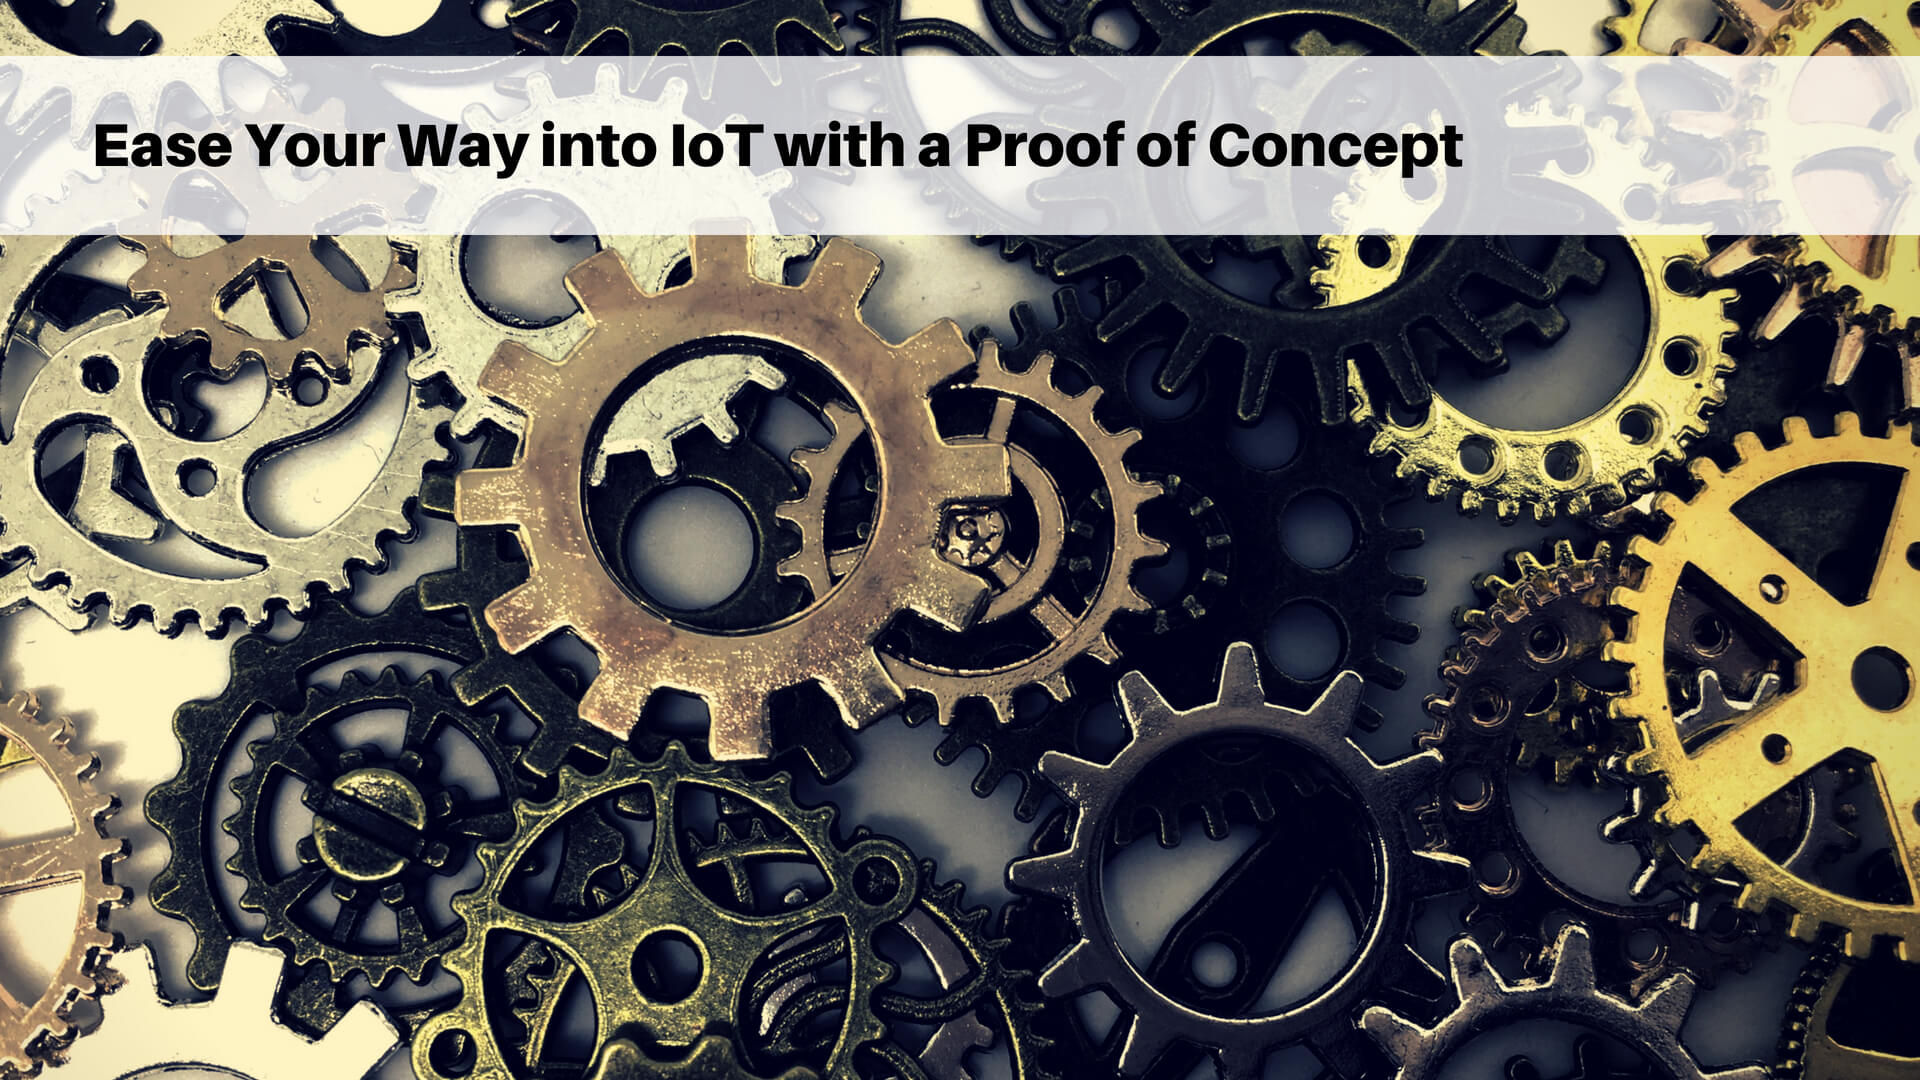 Ease Your Way into IoT with a Proof of Concept